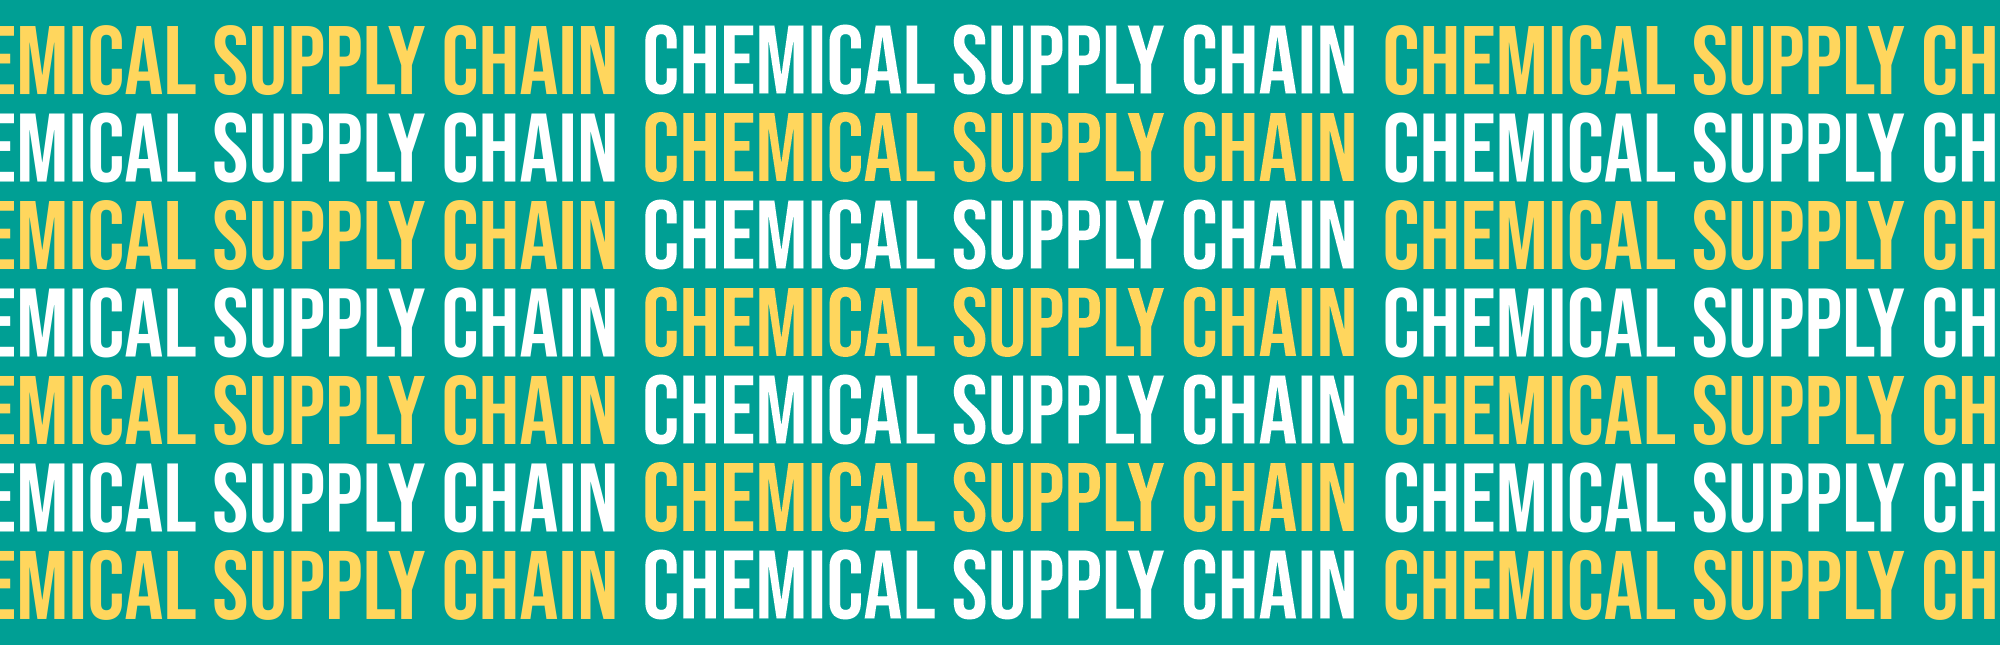 3 Challenges of the Chemical Industry Supply Chain and How to Beat Them!